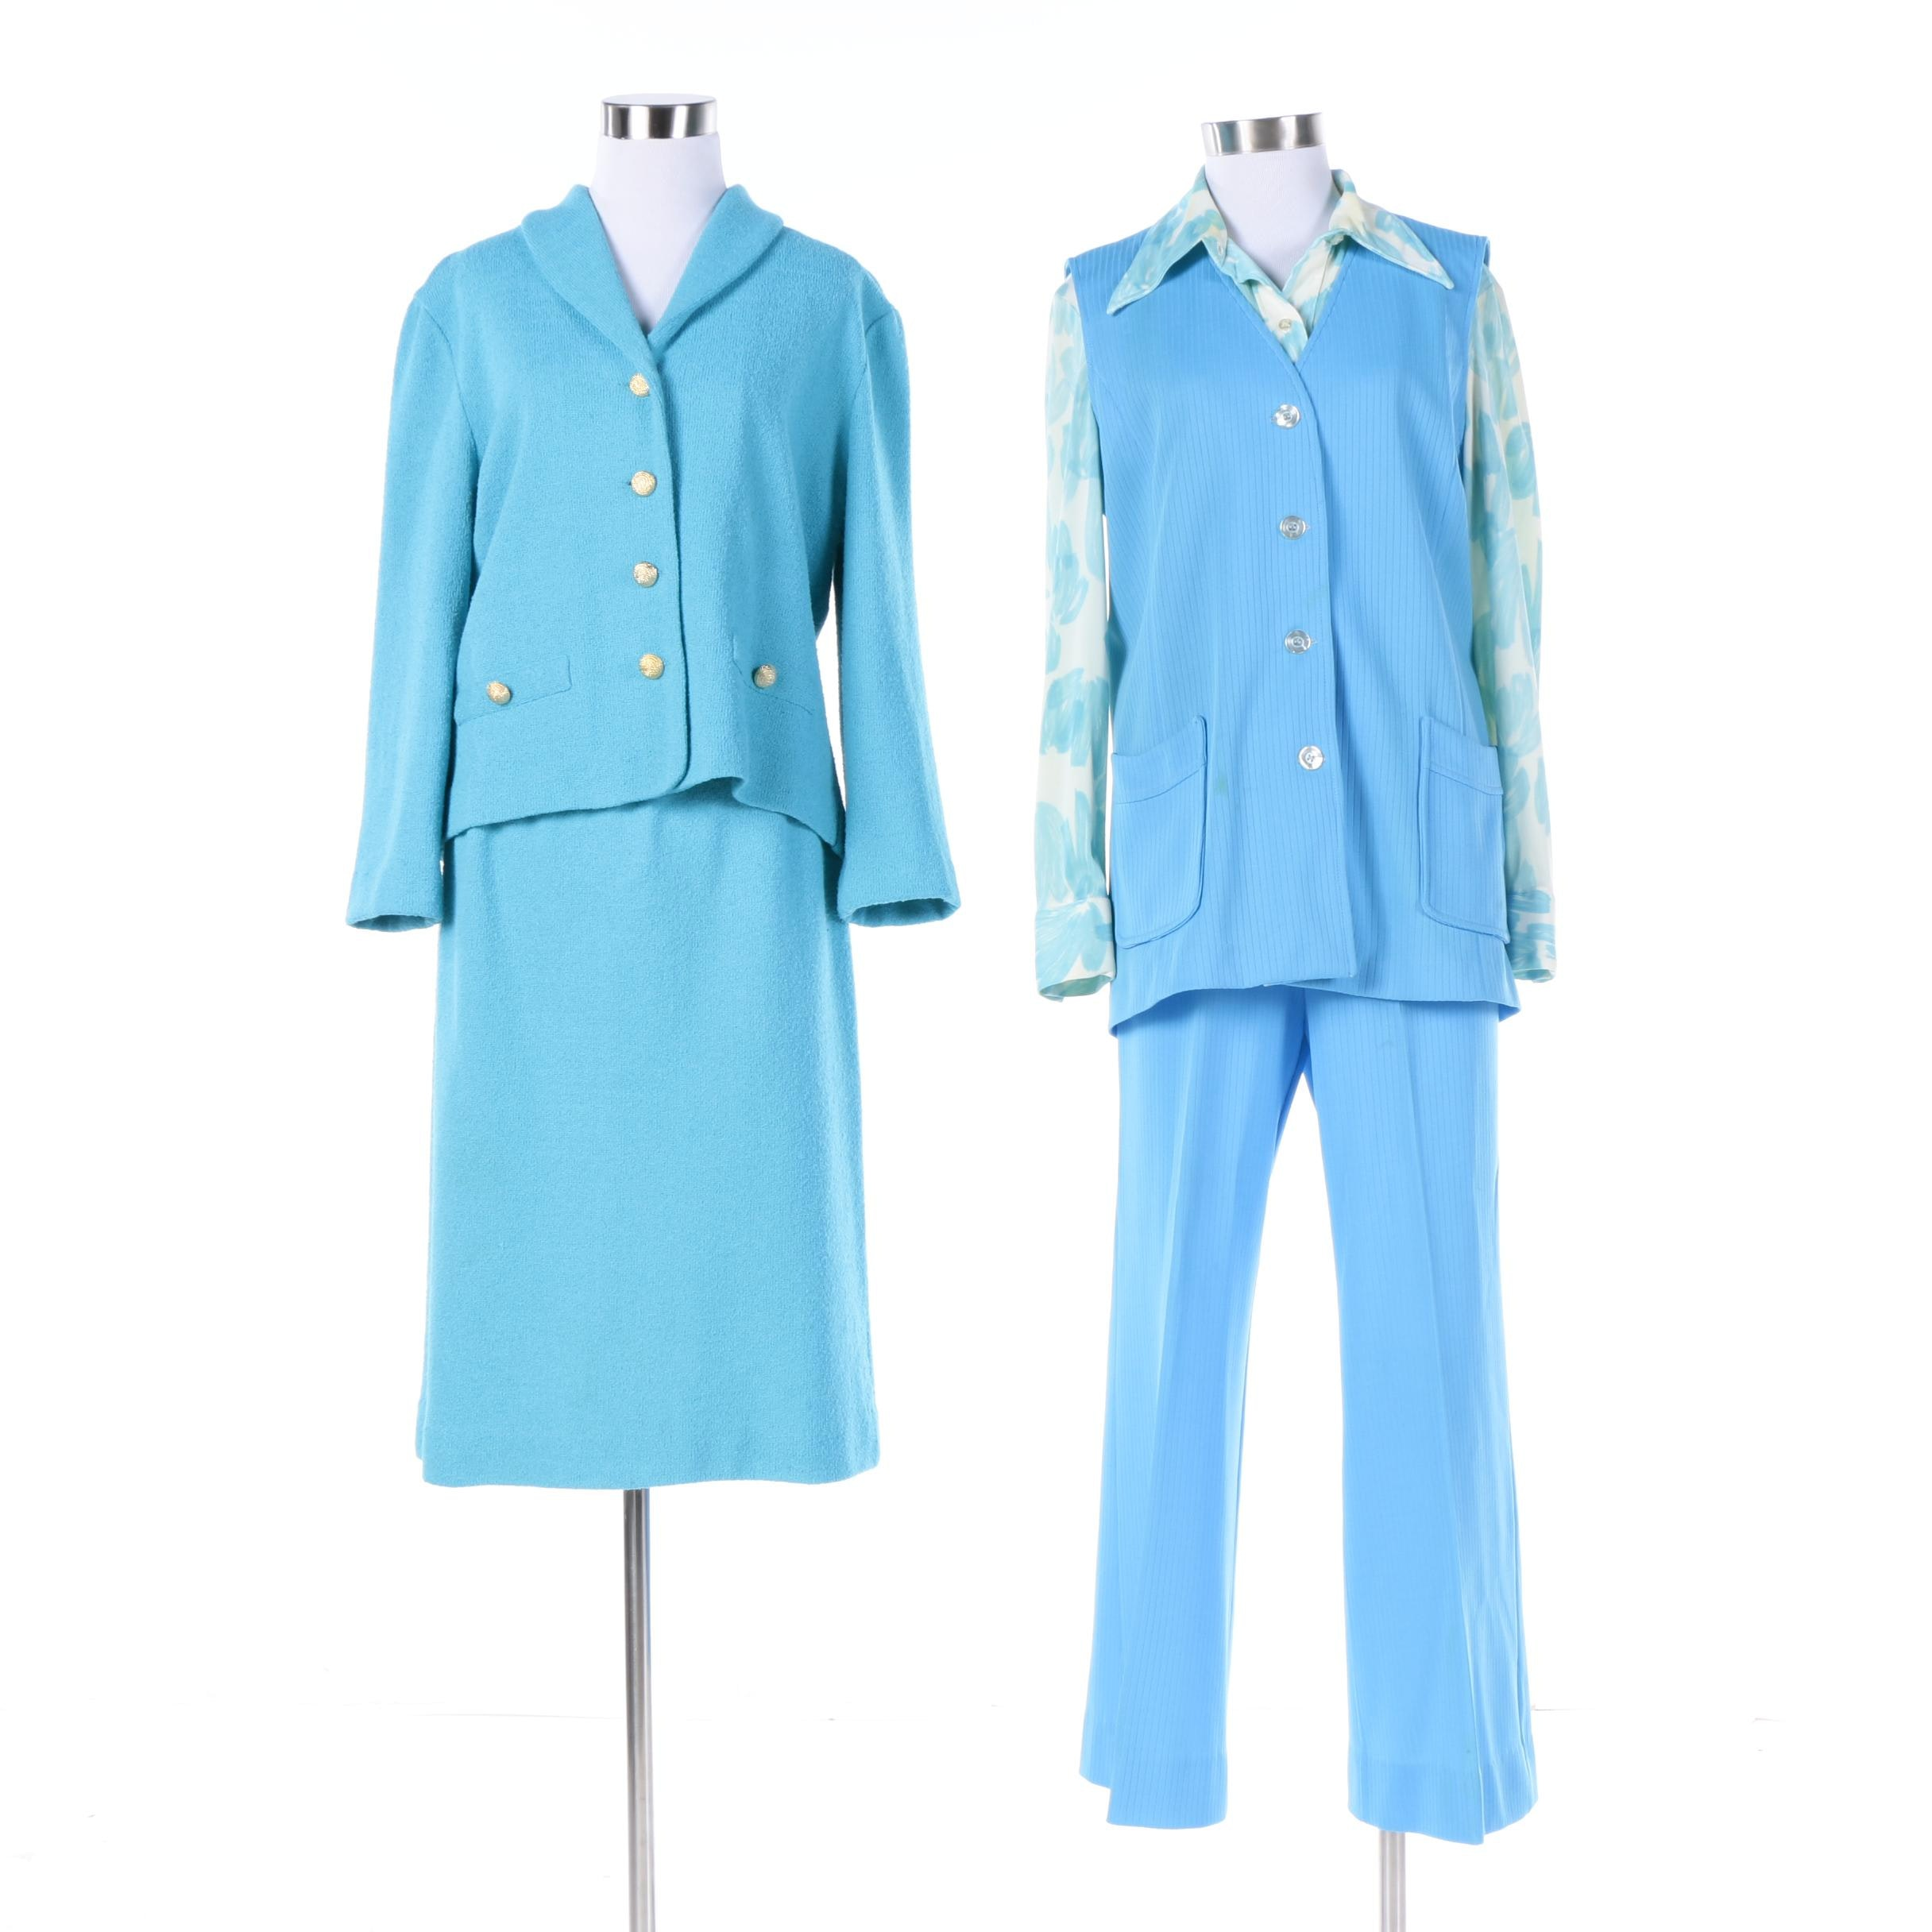 Circa 1970s Vintage Blue Polyester and Wool Suits Including Saks Fifth Avenue